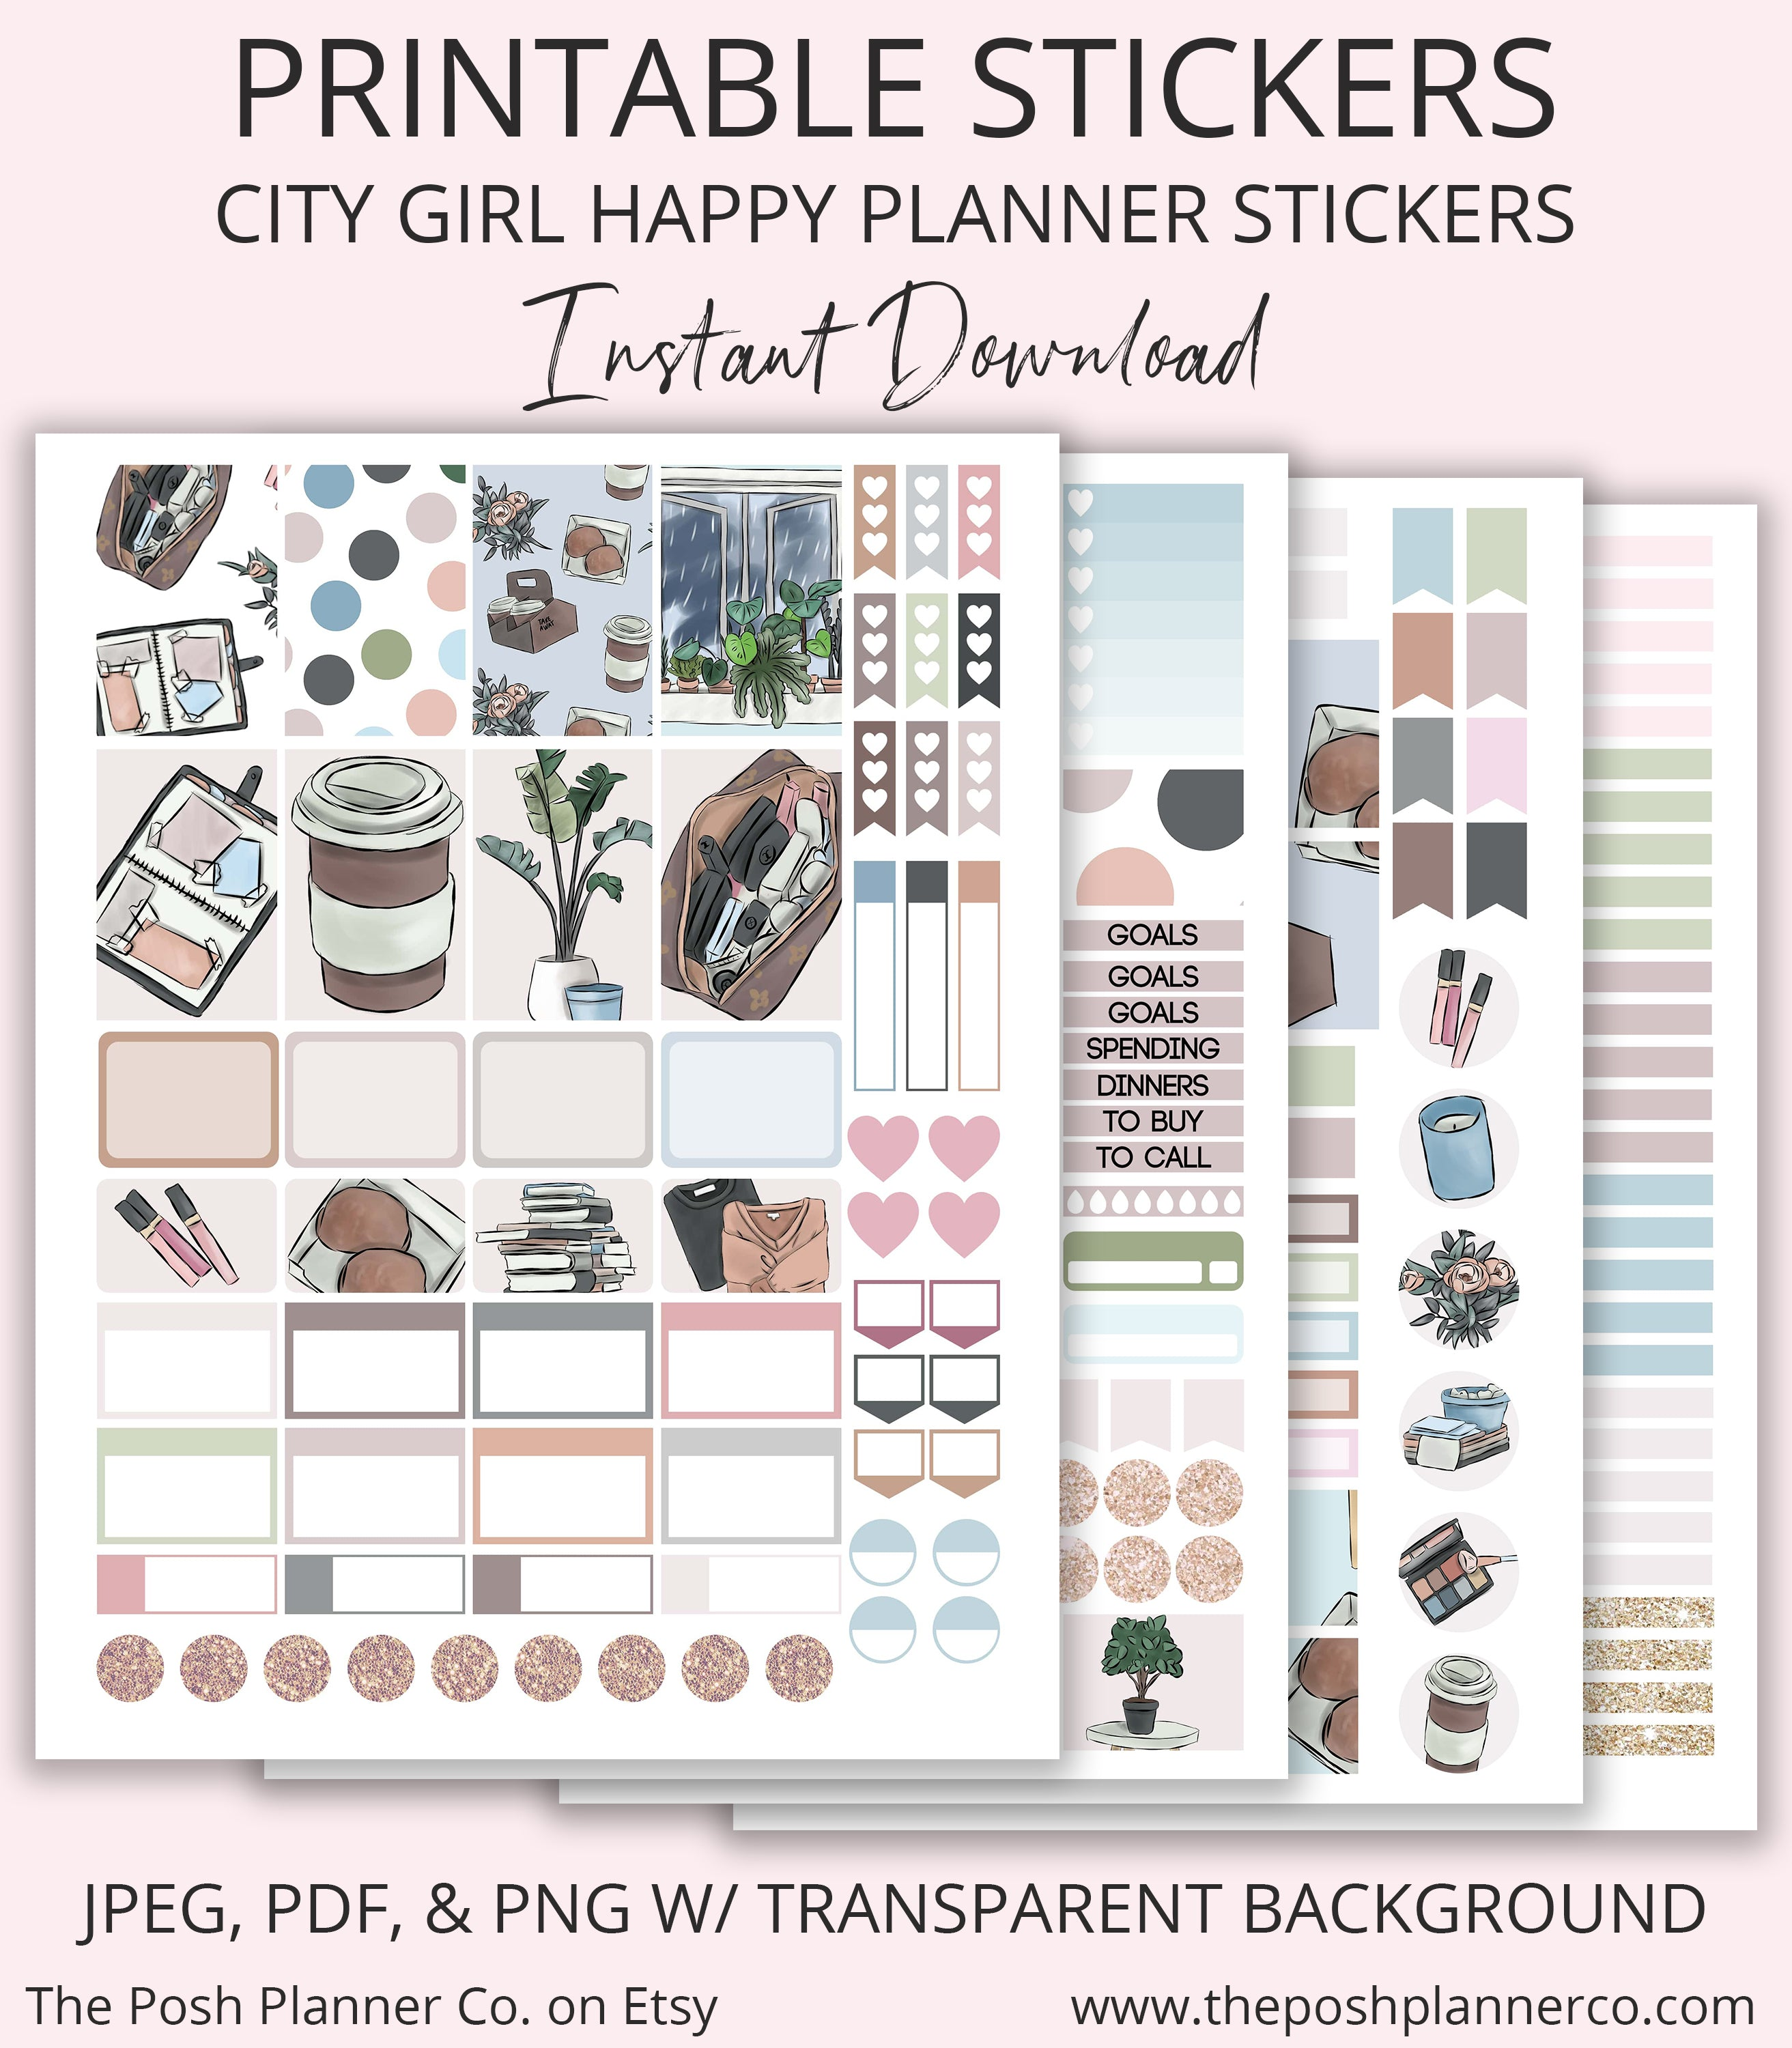 picture regarding Happy Planner Printable identify Printable Delighted Planner Stickers - Town Female Planner Stickers - Content Planner Clic Printables